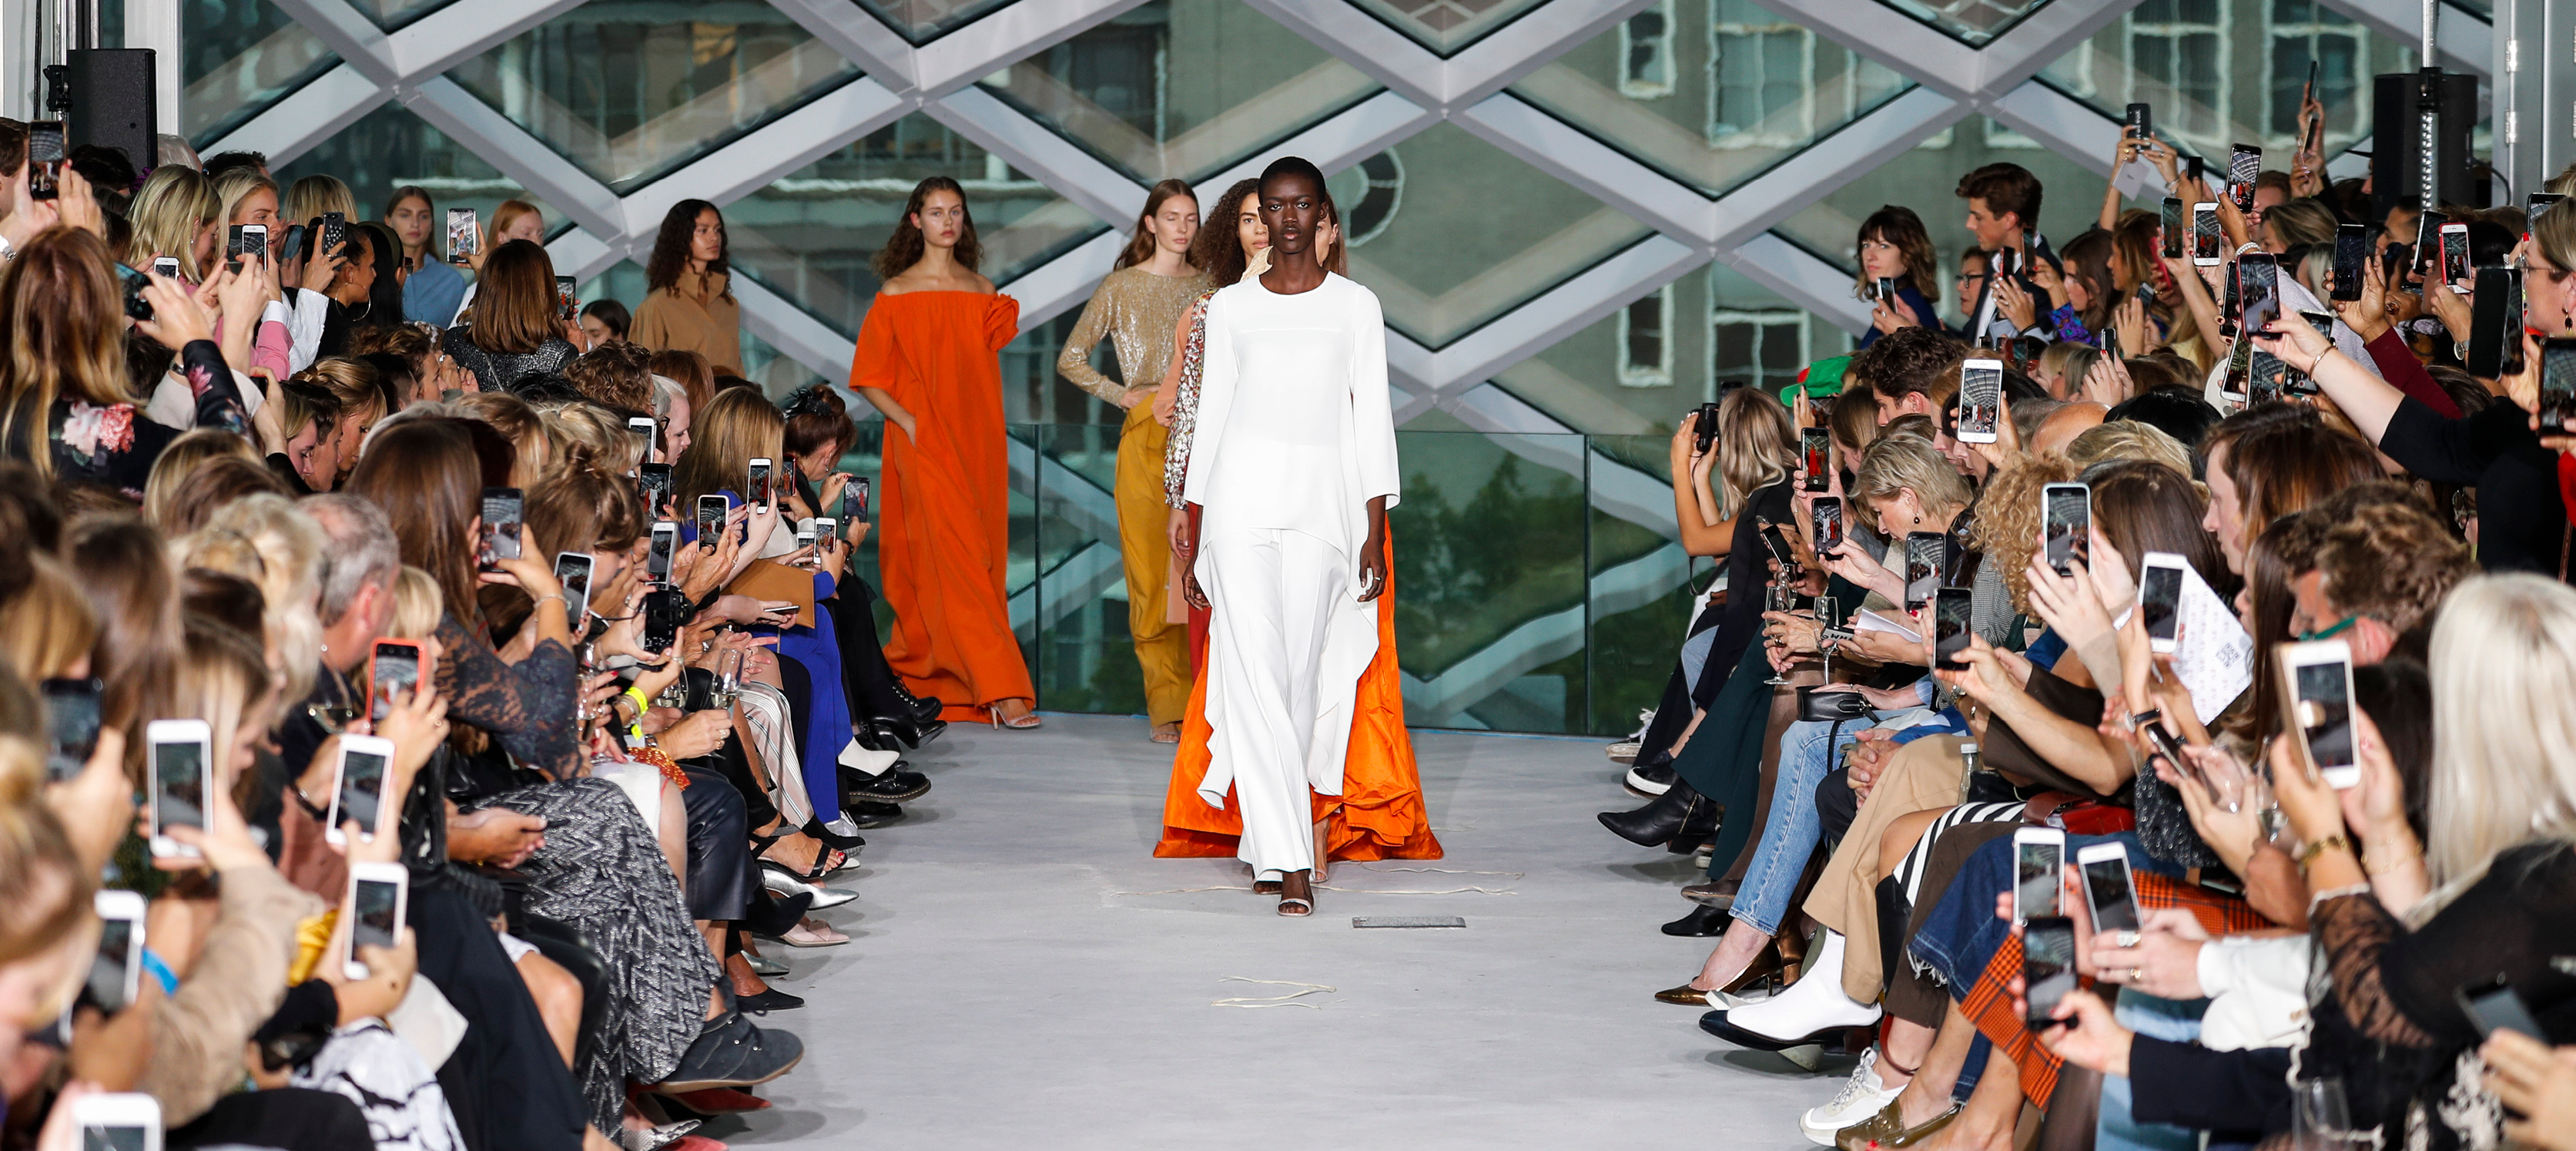 Dit was de September Editie van Amsterdam Fashion Week